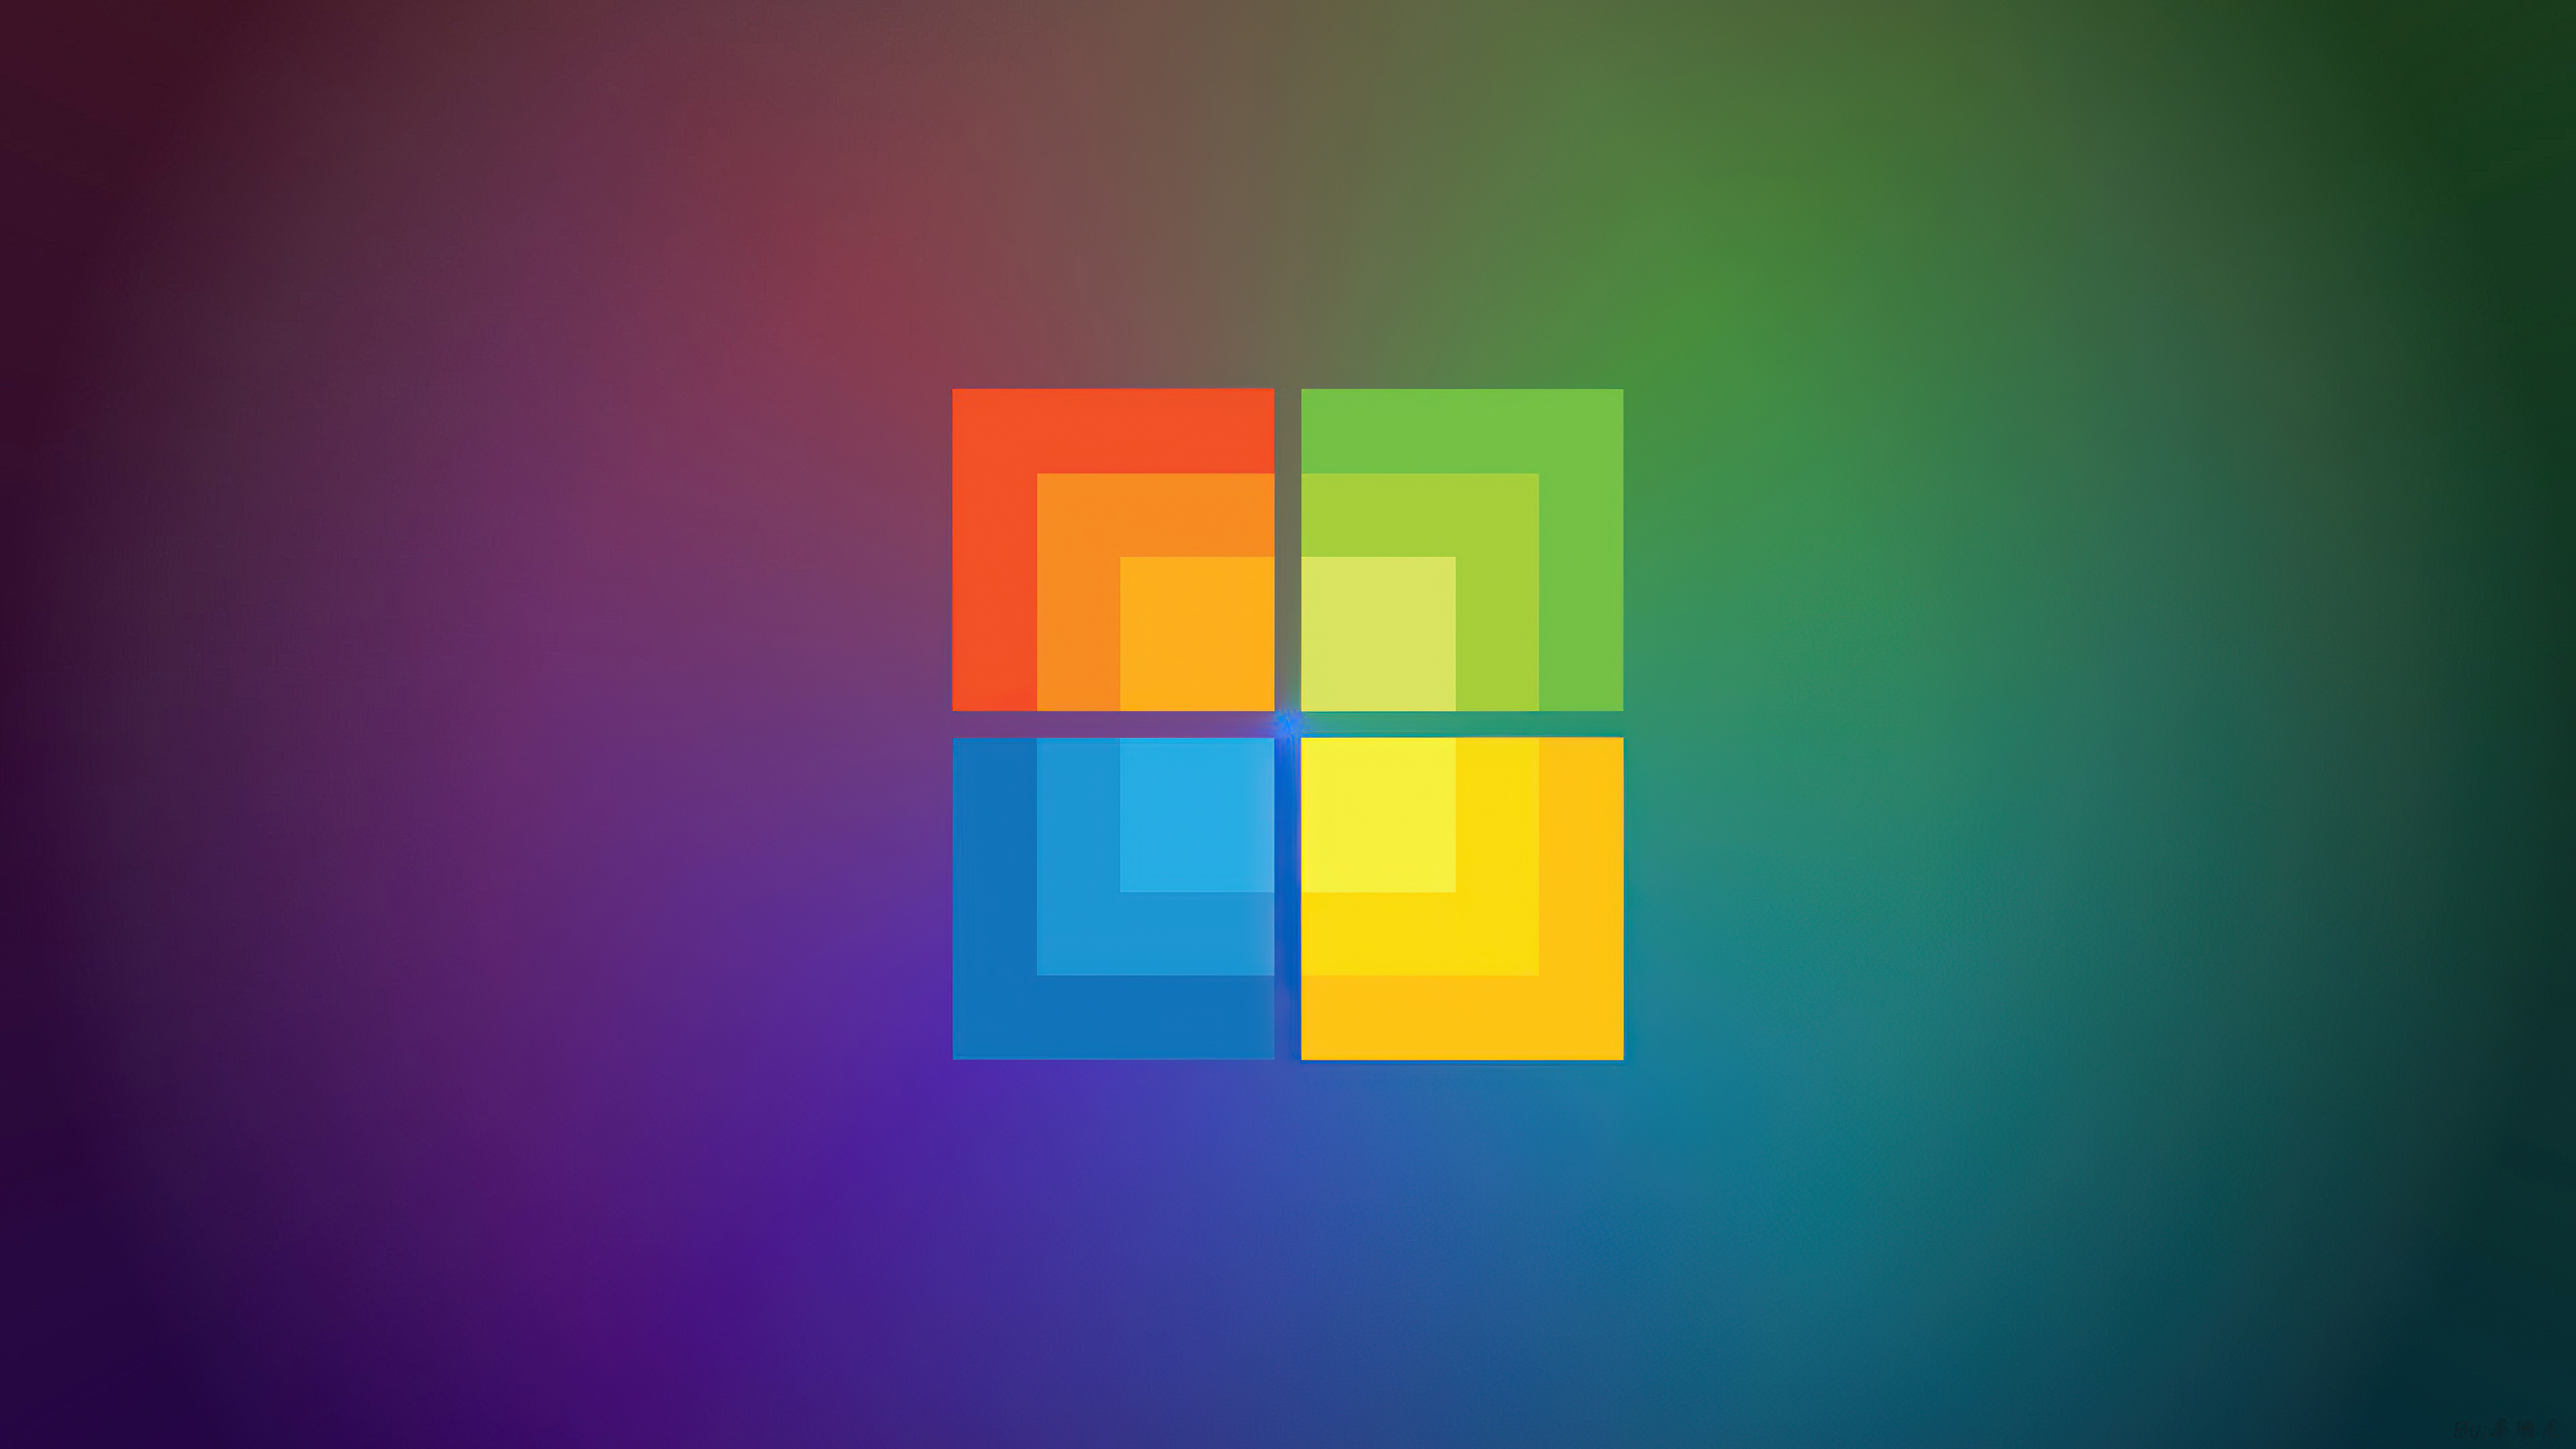 Windows 10 4k Wallpaper Colorful Gradient Background Technology 1502